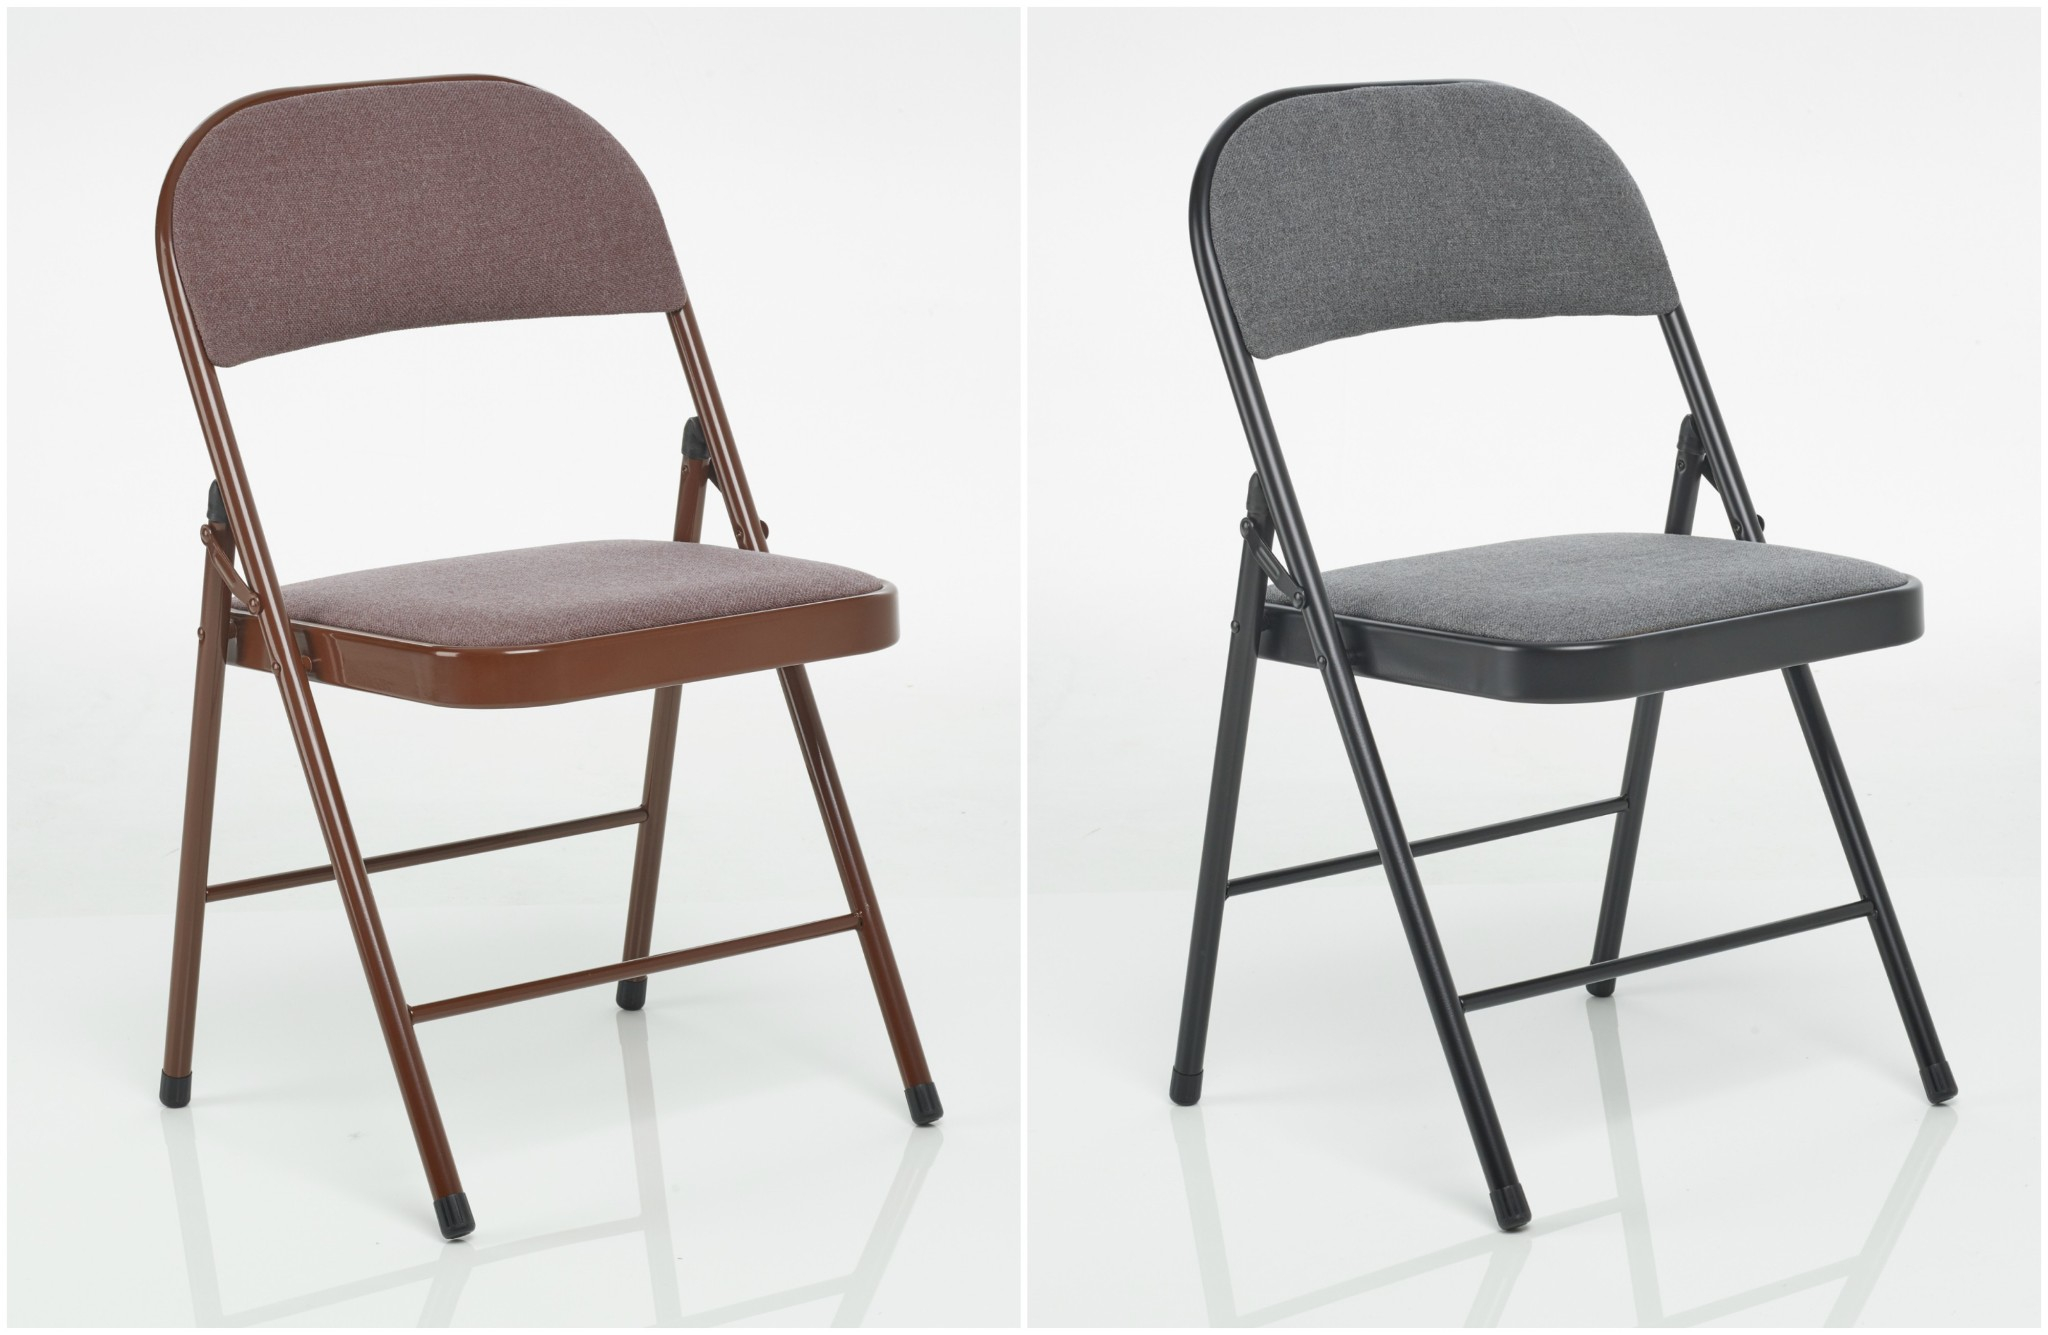 Details About Deluxe Fabric Folding Chair Office Reception Padded Desk Chairs Foldable Storage with regard to size 2048 X 1335